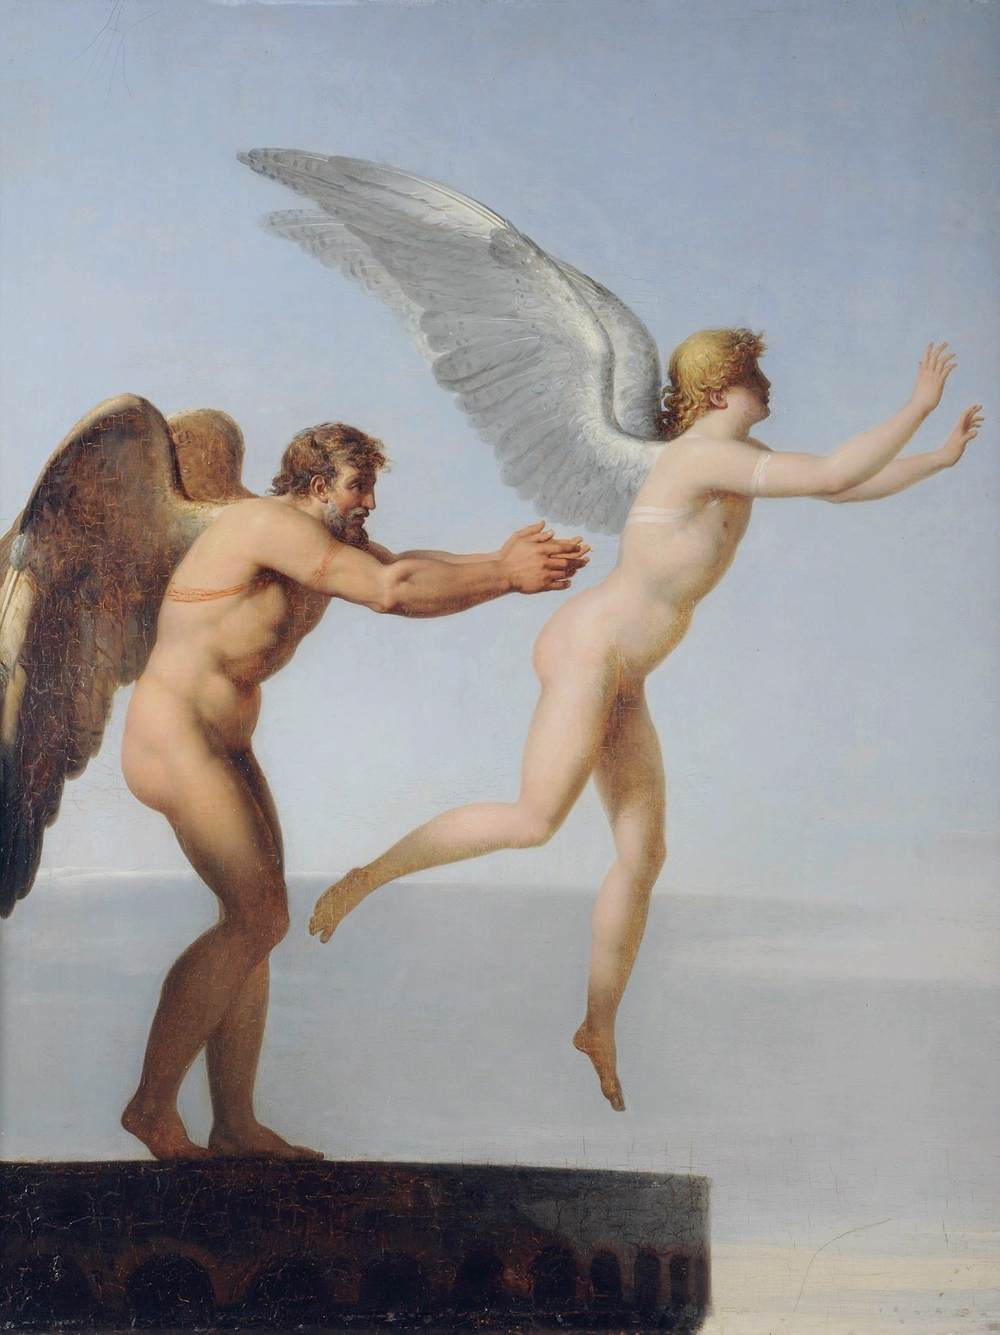 comparing the use of icarus in ìmusèe des beaux artsî and this heavy craftî essay Musée des beaux arts in auden's poem musée des beaux arts,[1] auden juxtaposes the ordinary as well as the extraordinary events in everyday life auden writes, about suffering they were never wrong (1) auden reveals the wrongly accused in gods eyes.